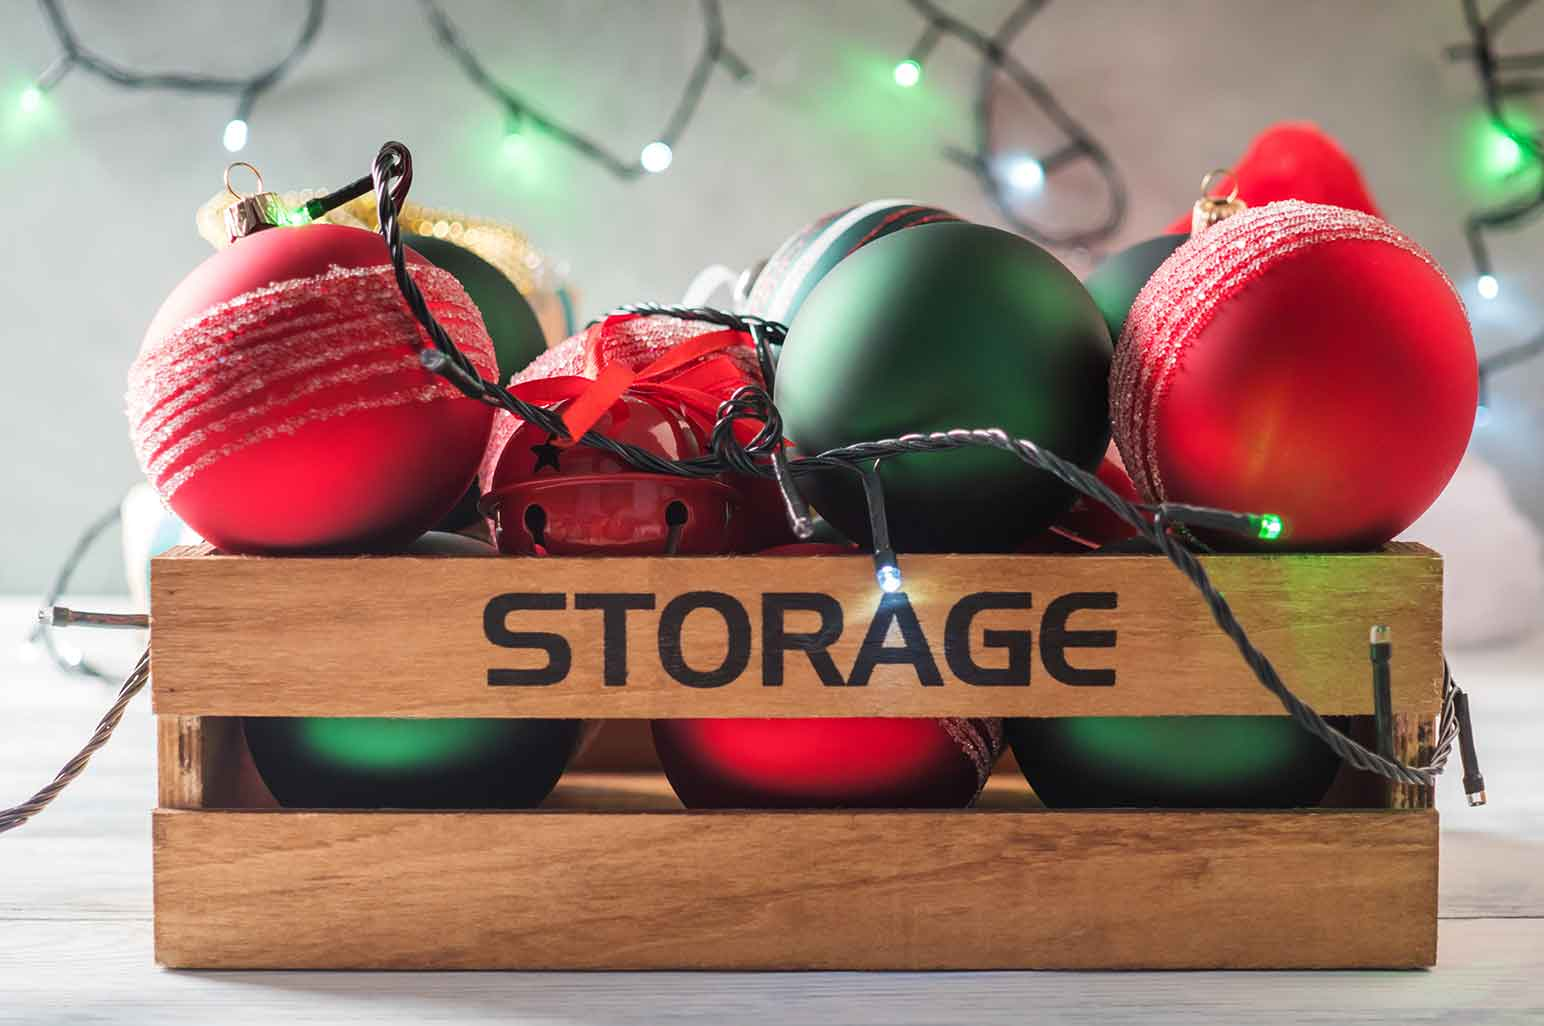 Expert Tips on How to Keep Your Holiday Decorations Organized